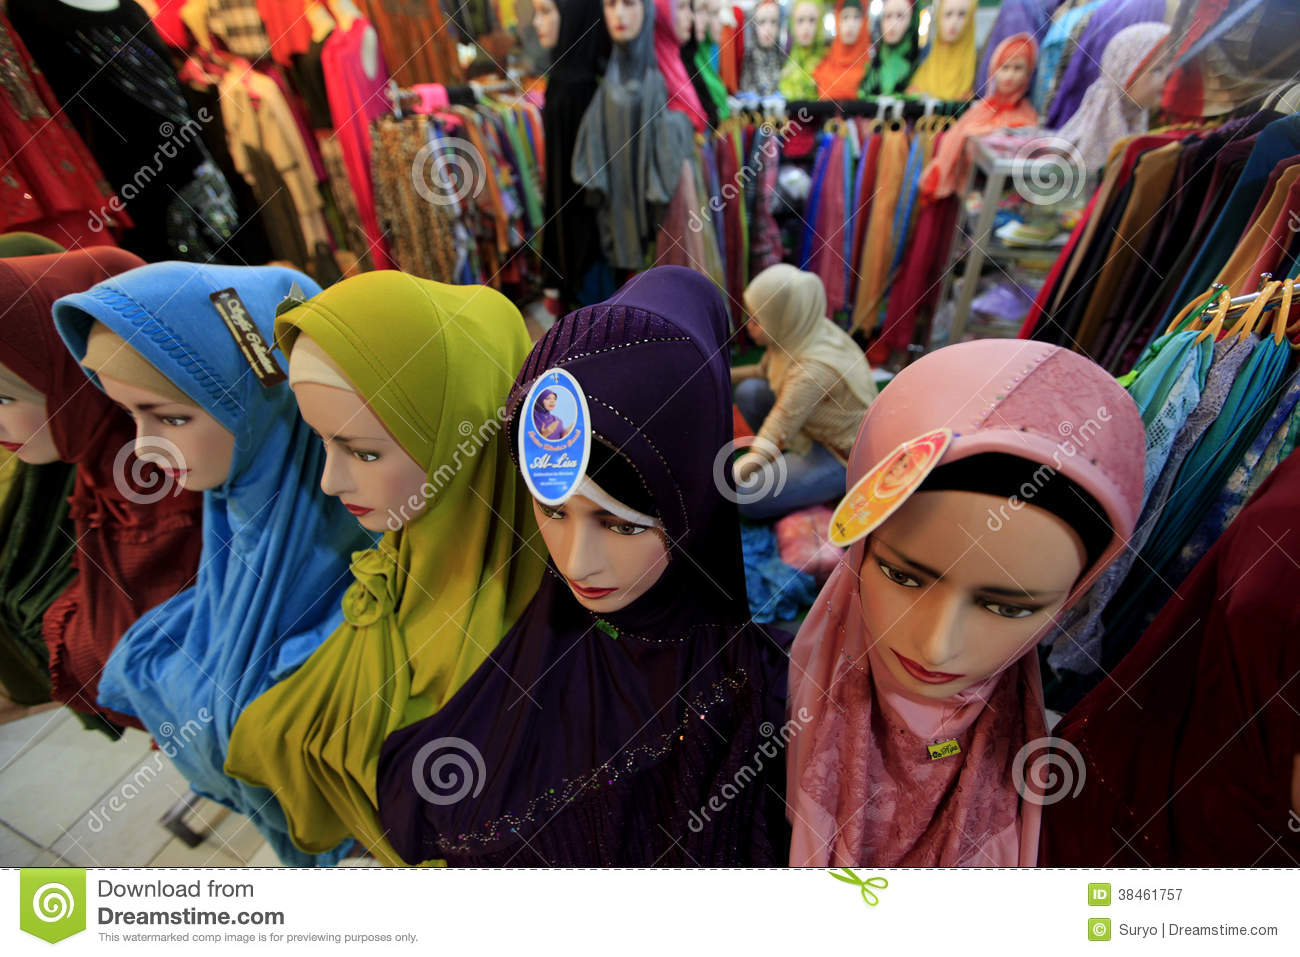 java center muslim girl personals Arcade's best 100% free muslim girls dating site meet thousands of single muslim women in arcade with mingle2's free personal ads and chat rooms our network of muslim women in arcade is the perfect place to make friends or find an muslim girlfriend in arcade.